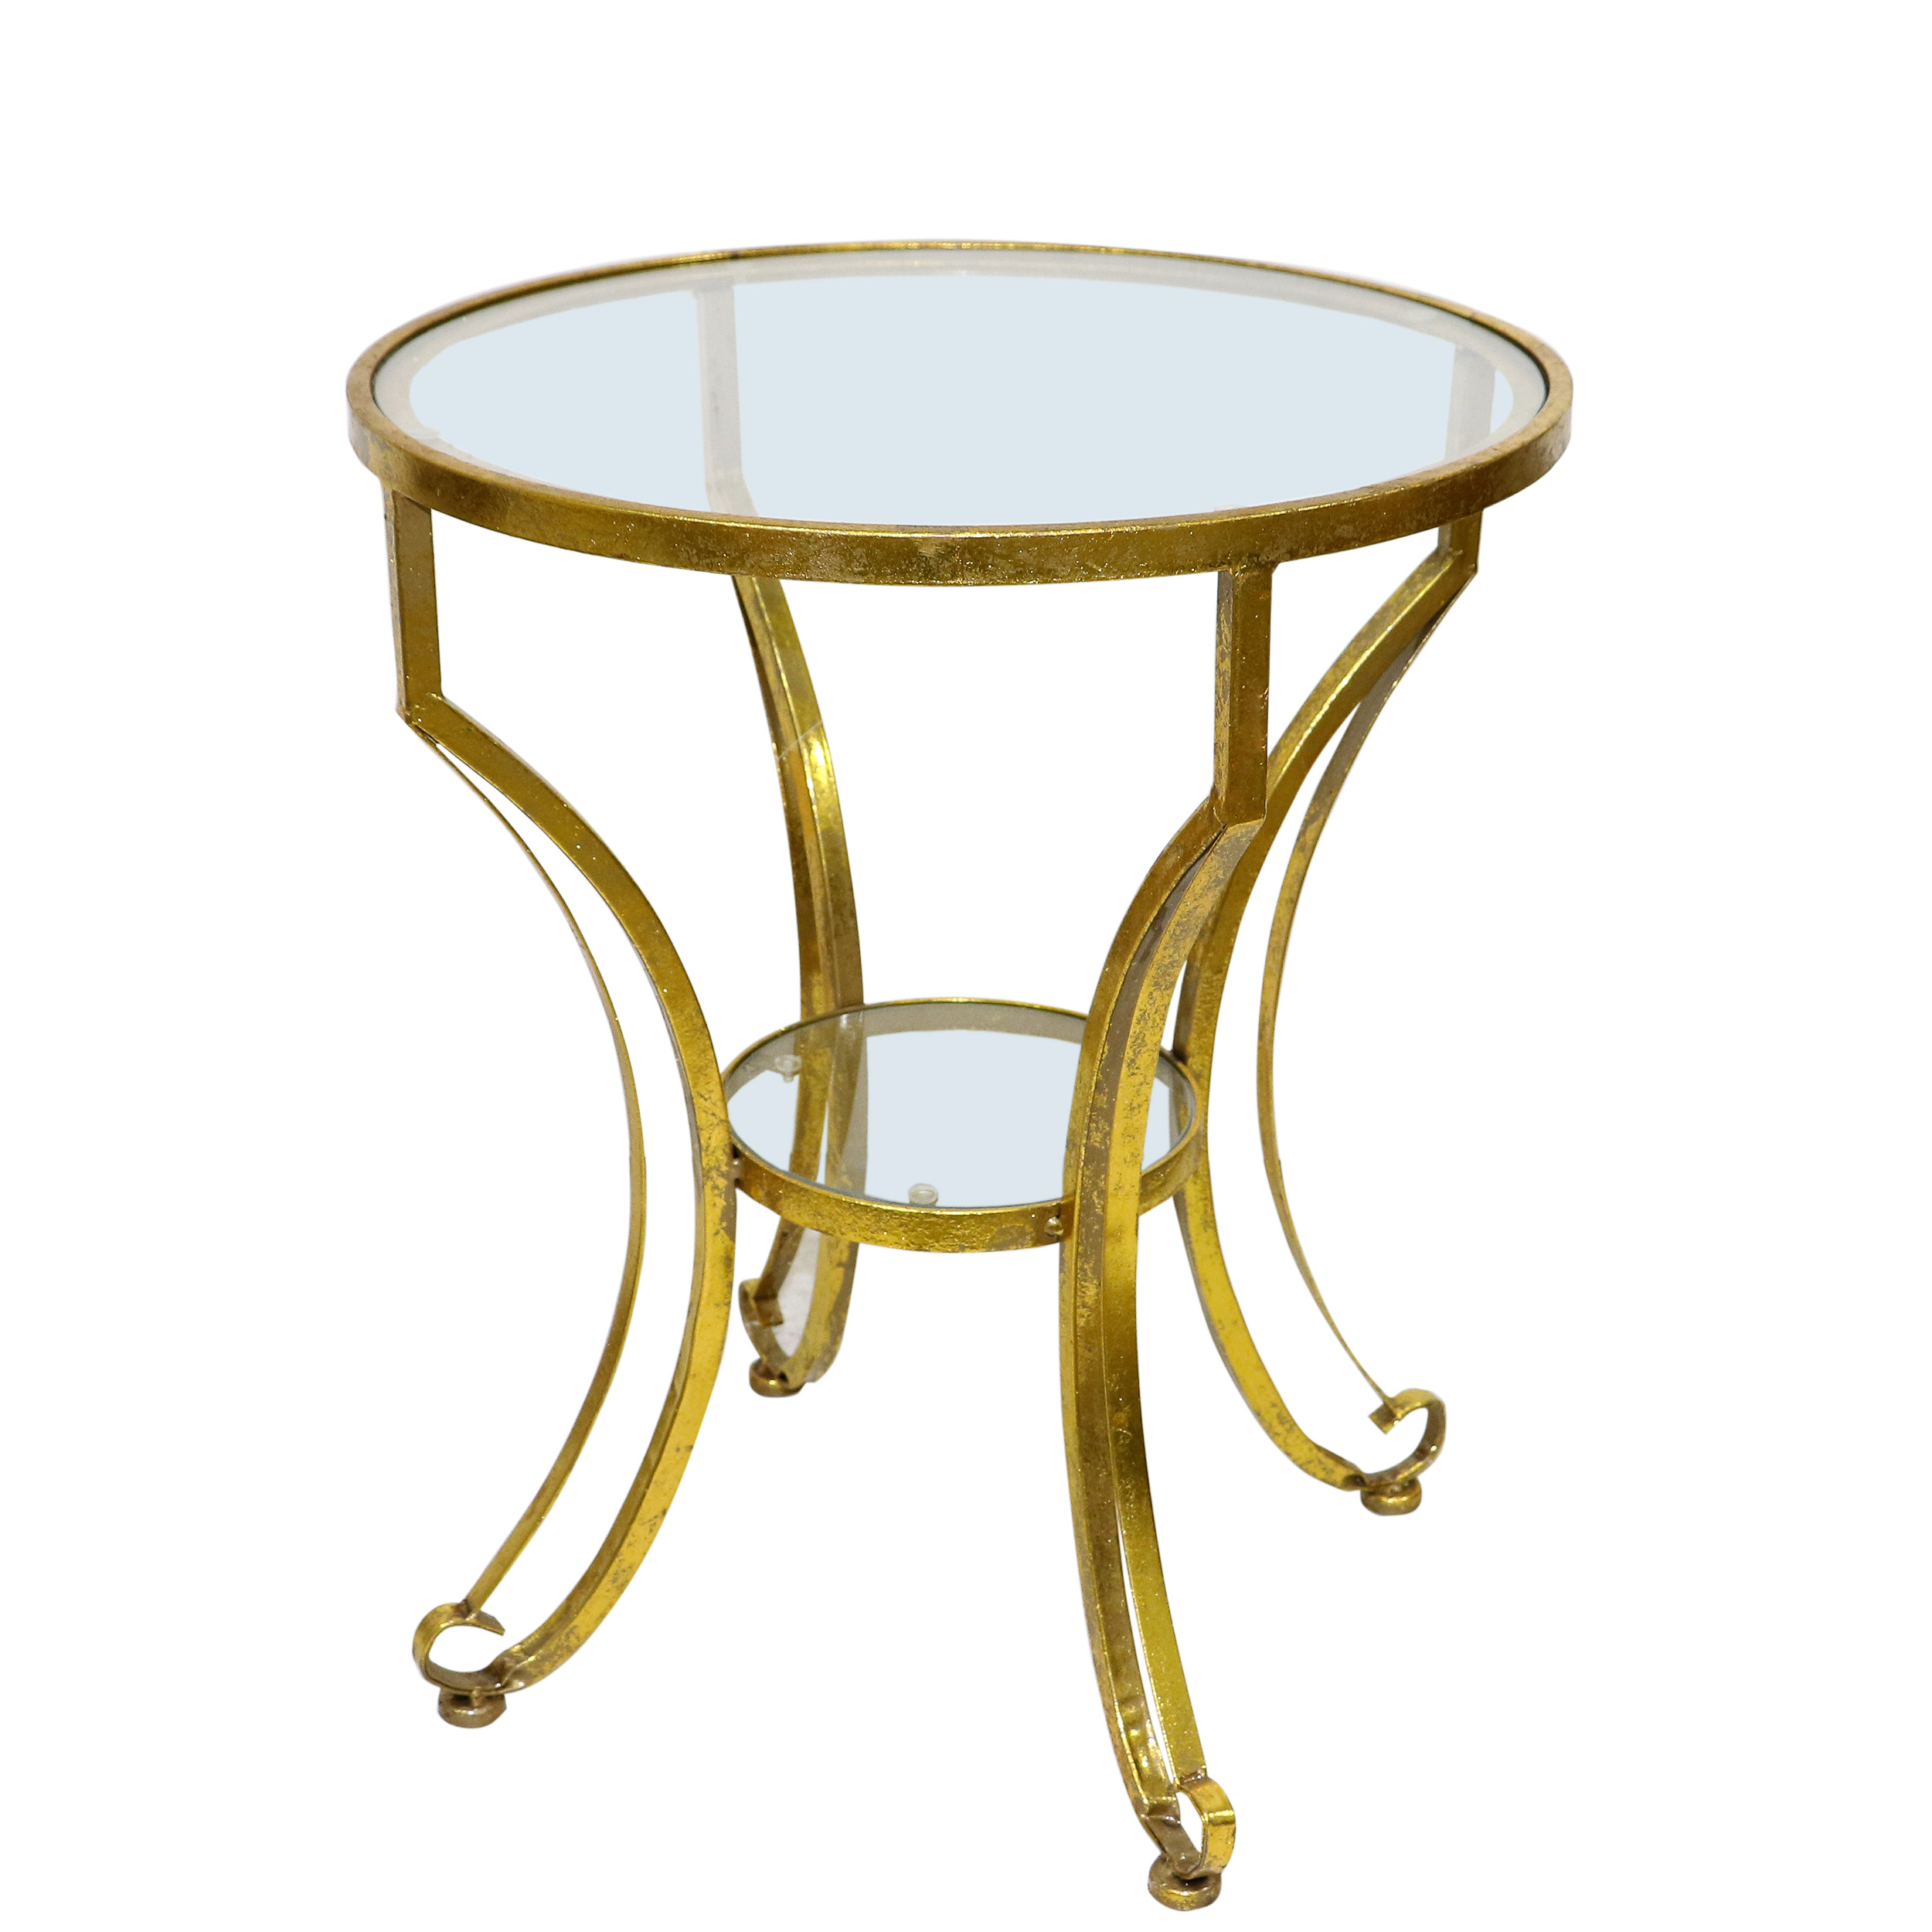 Bryan-Miraflor-Product-Photography-Accent-Furniture-62.jpg